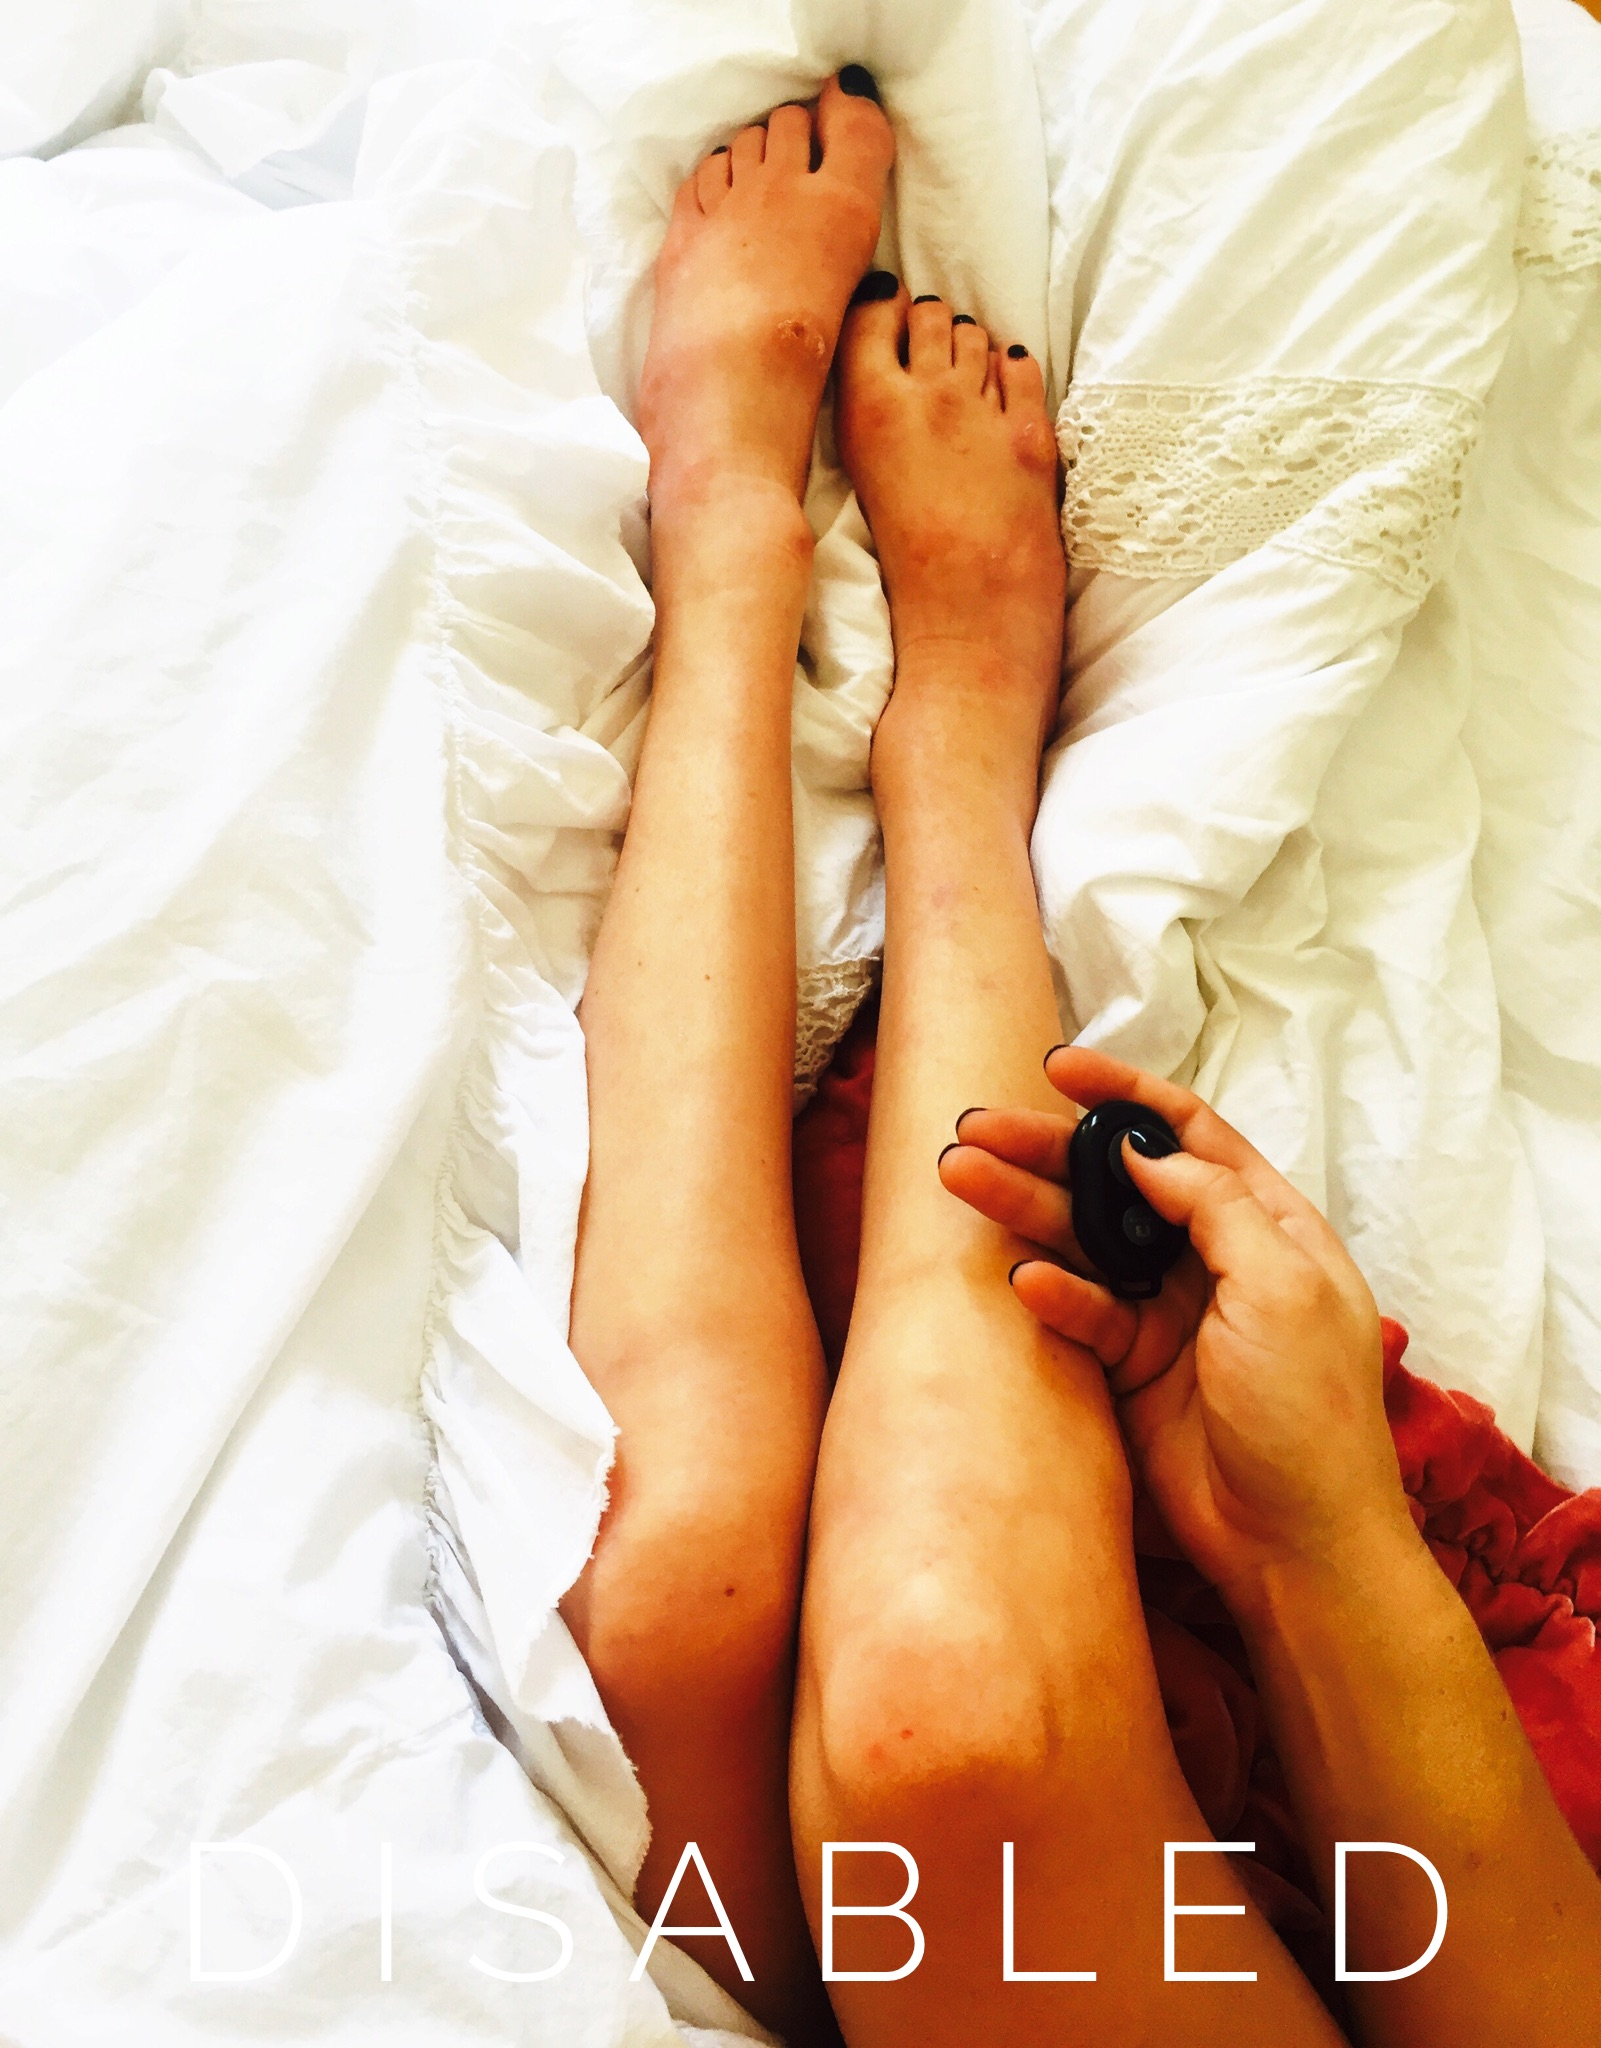 [Image Description: The photo shows Erin's legs and one hand (which holds a small black object), shot from an overhead angle with the knees foreshortened. Her long legs end in twisted ankles and subtly deformed feet decorated with black nail polish. The white rumpled bedsheets and lace beneath her gives the image a sensual feel, as does the visual impact of her flushed golden skin. Sans-serif font reads DISABLED.]